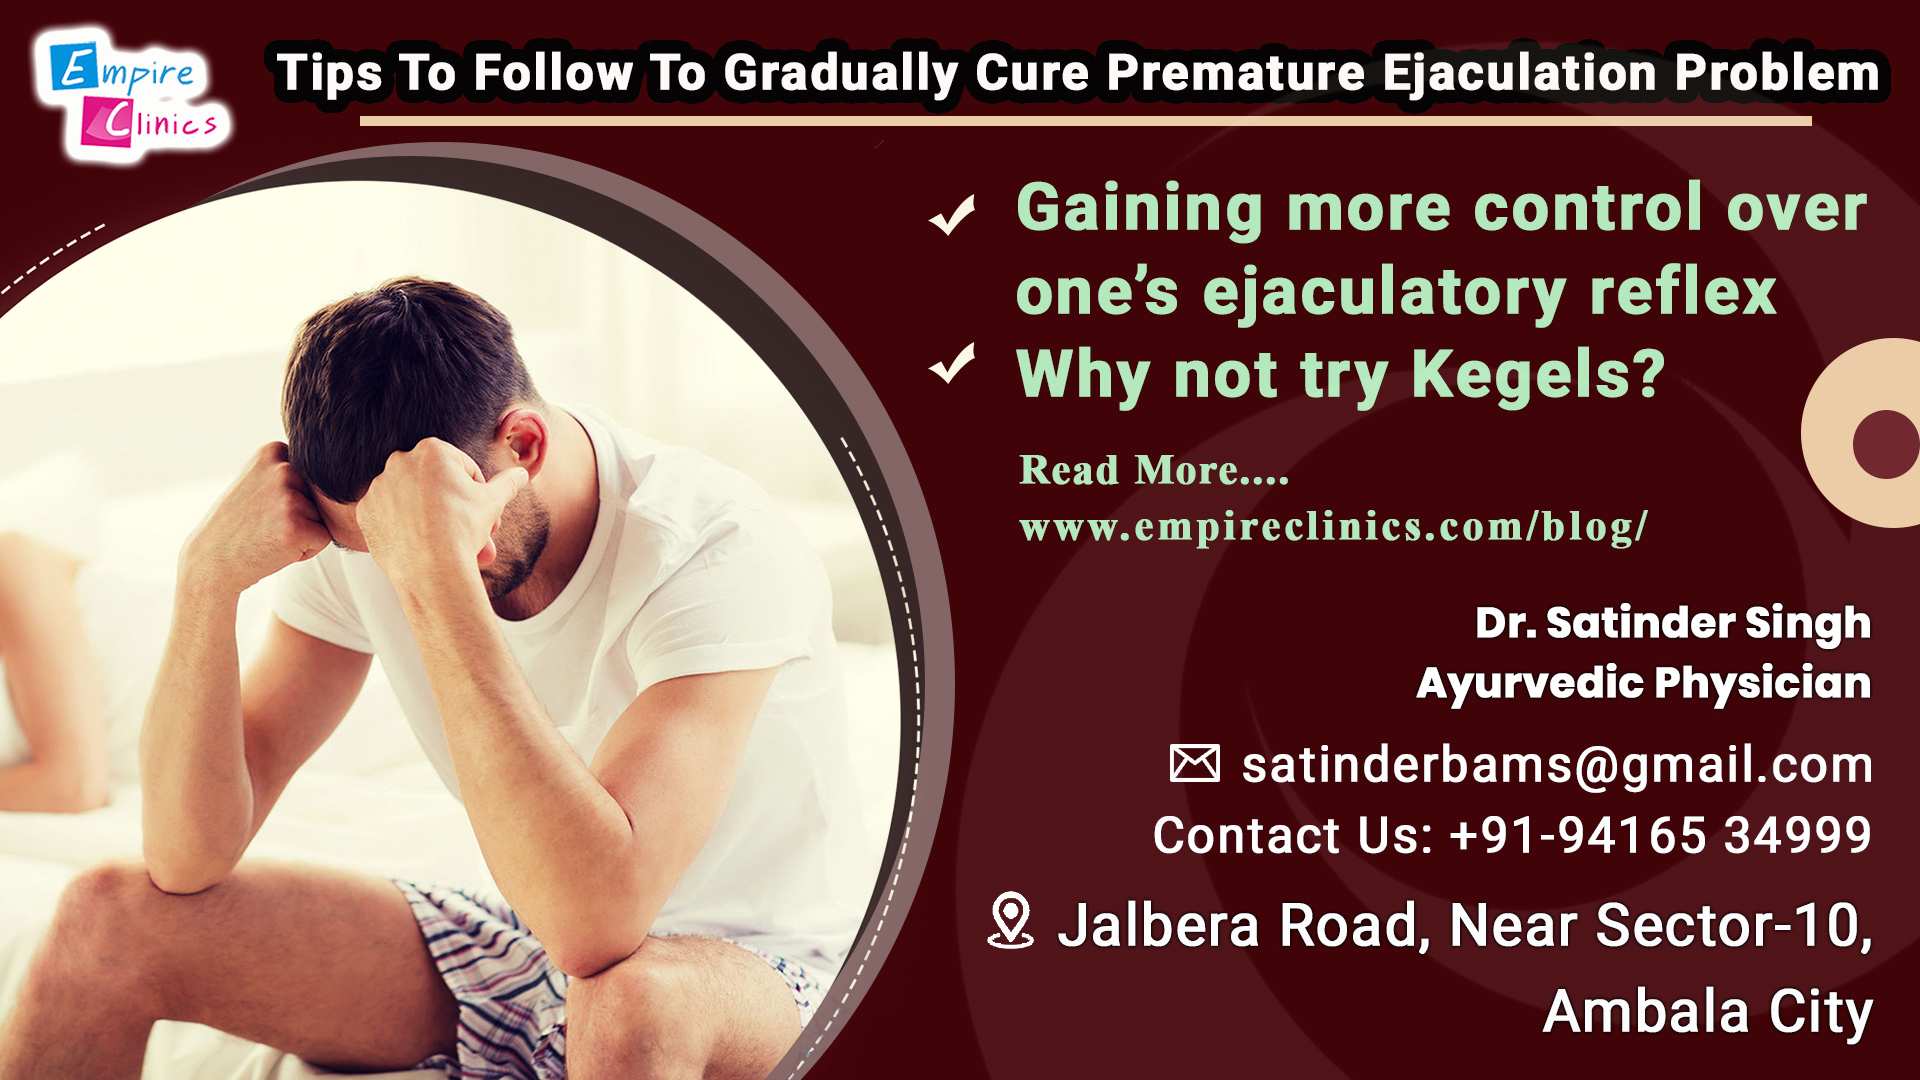 tips-to-follow-to-gradually-cure-premature-ejaculation-problem